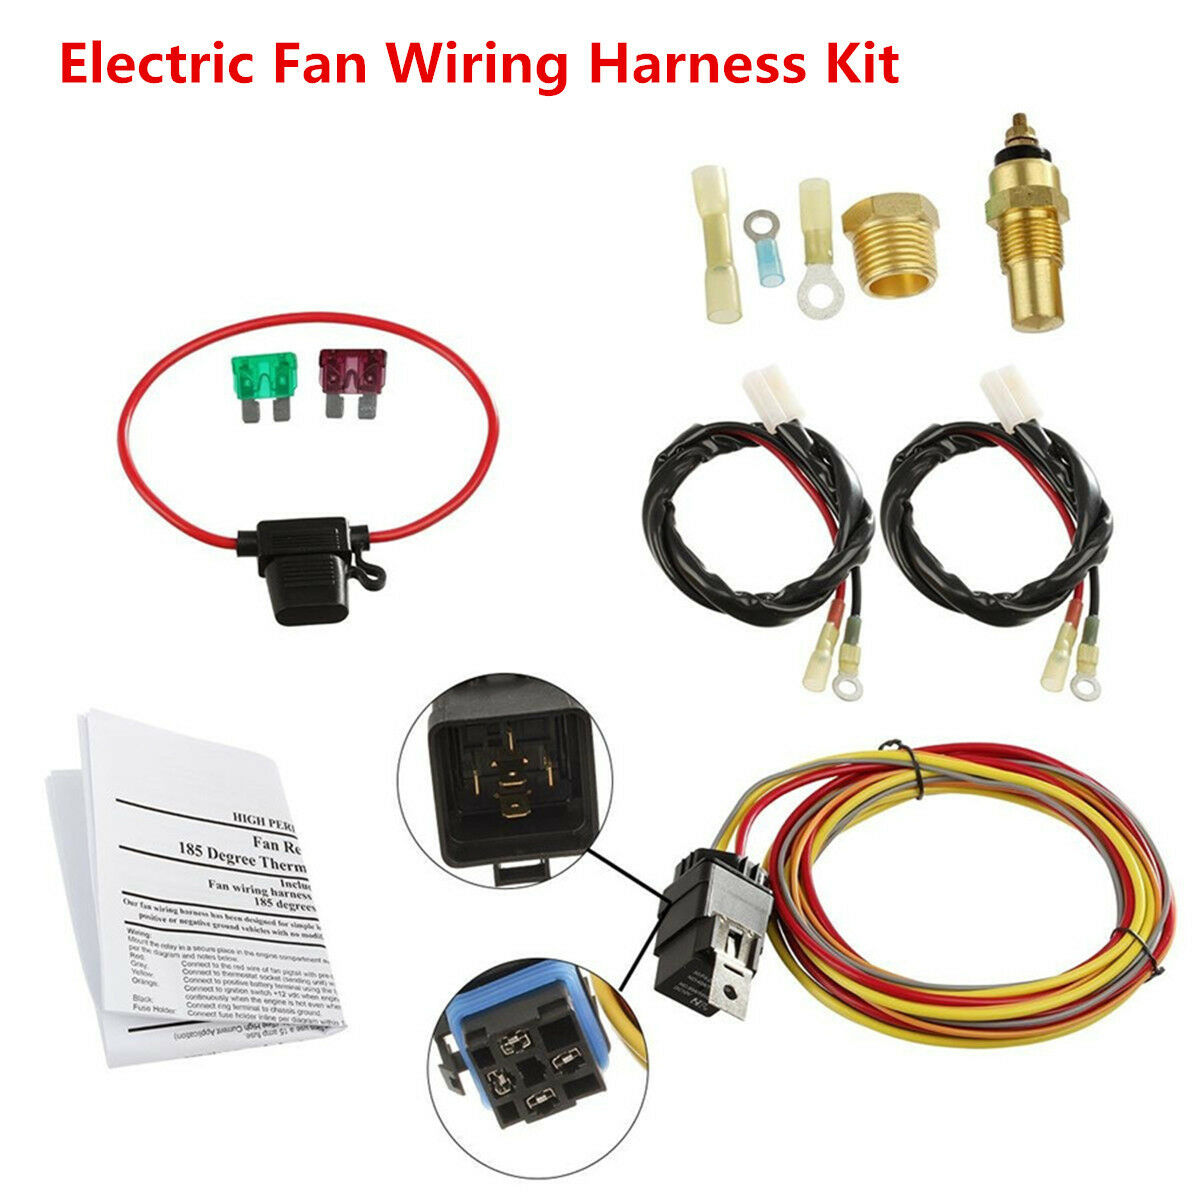 Dual Electric Engine Cooling Fan Wiring Harness 185 165 Thermostat Flexalite 180 Universal Norton Secured Powered By Verisign